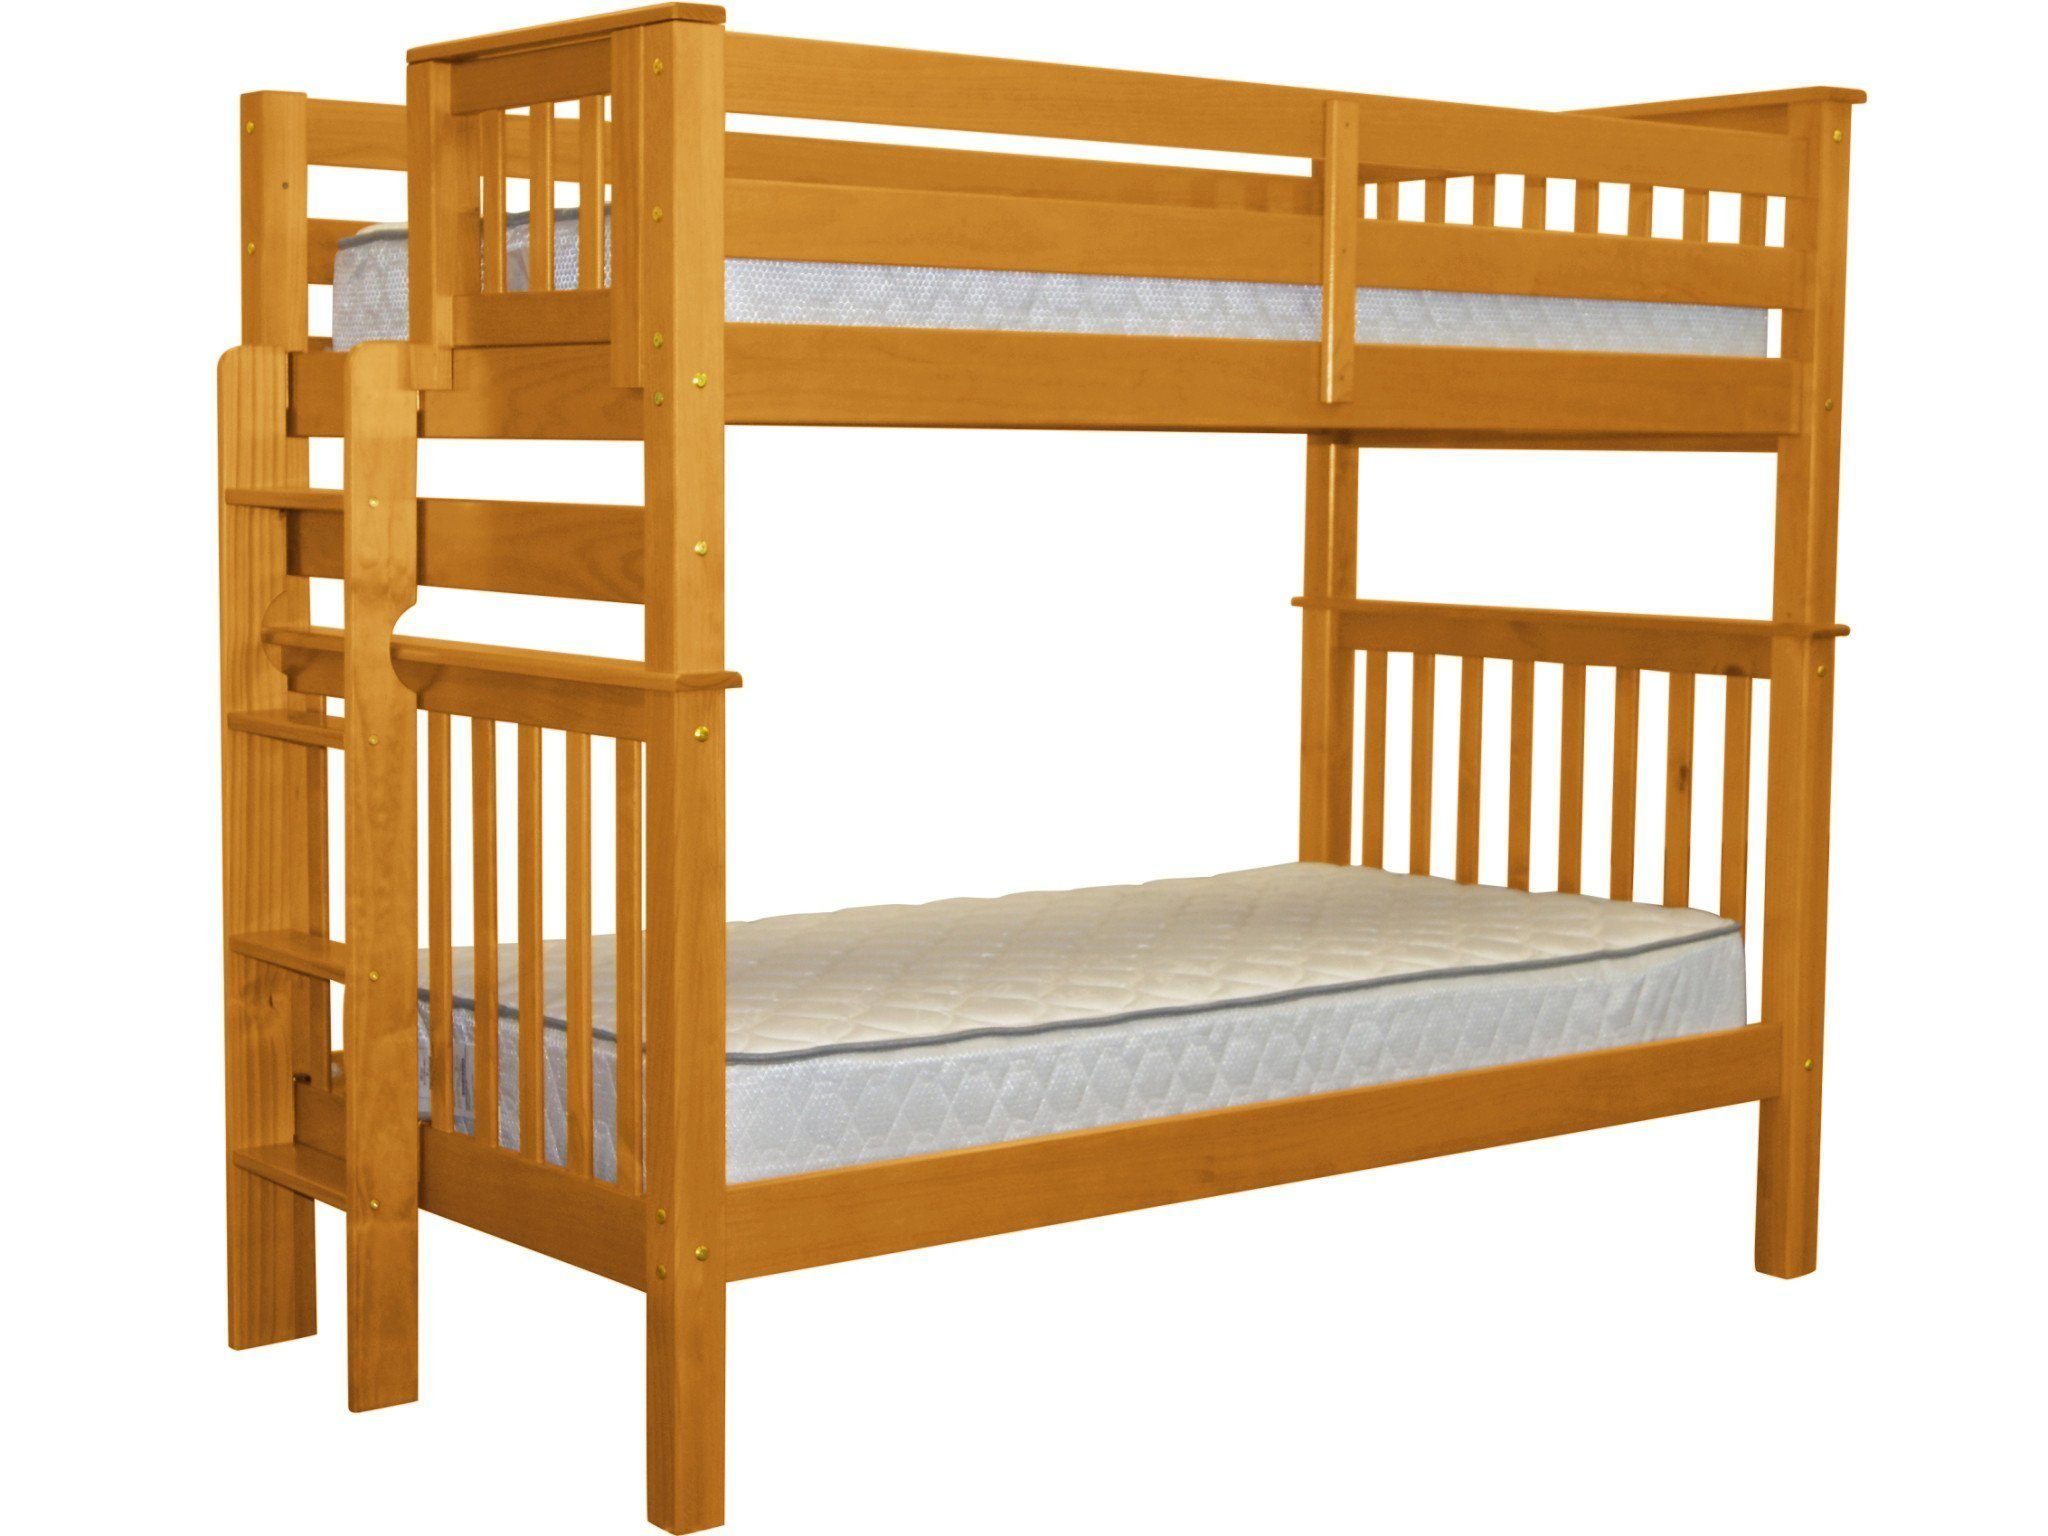 Bedz King Tall Bunk Beds Twin over Twin Mission Style with End Ladder, Honey